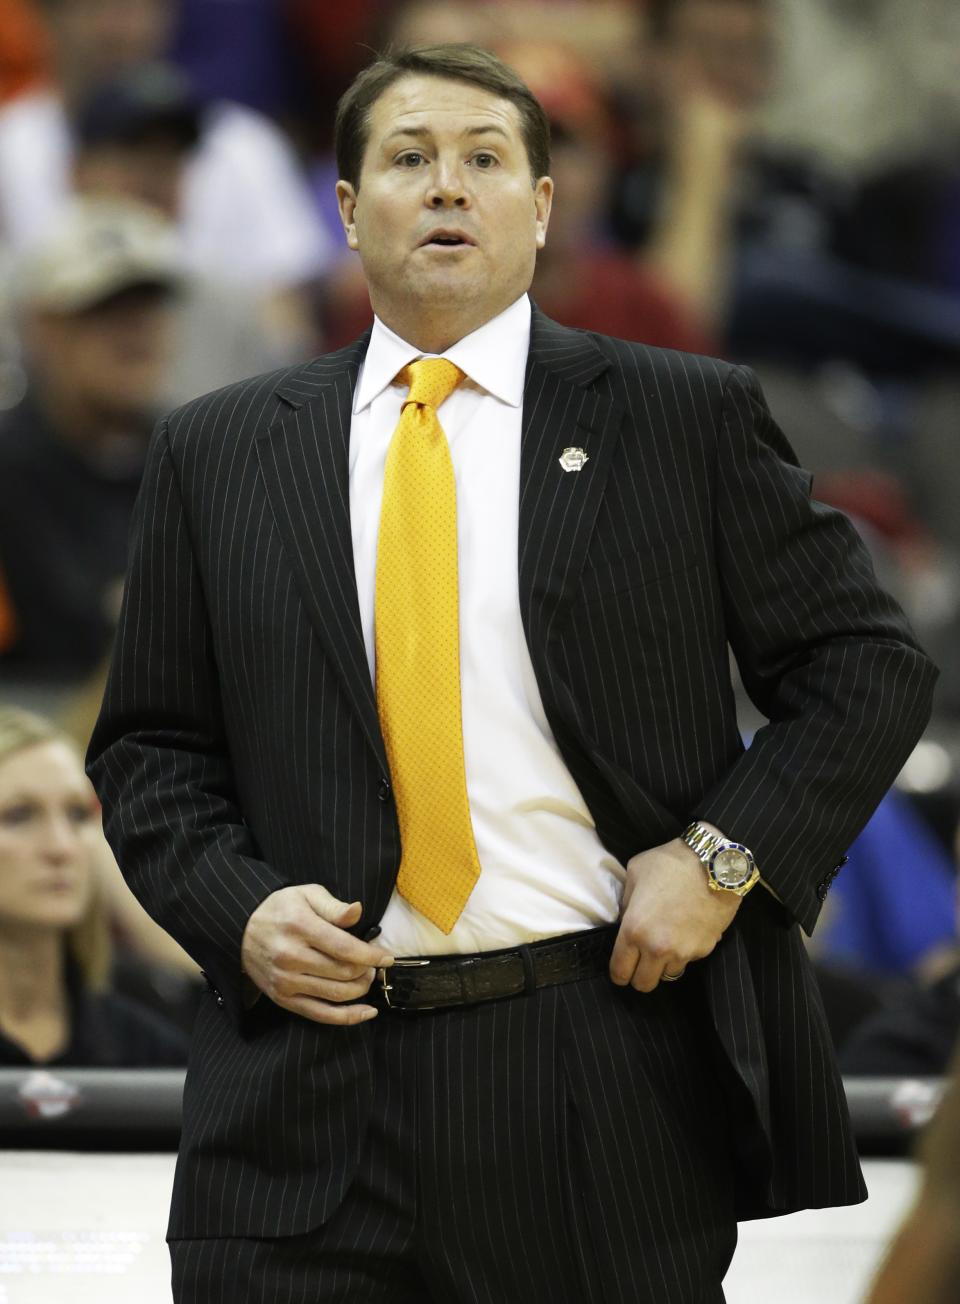 Oklahoma State head coach Travis Ford watches his team during the first half of an NCAA college basketball game against Baylor in the Big 12 tournament on Thursday, March 14, 2013, in Kansas City, Mo. (AP Photo/Orlin Wagner)